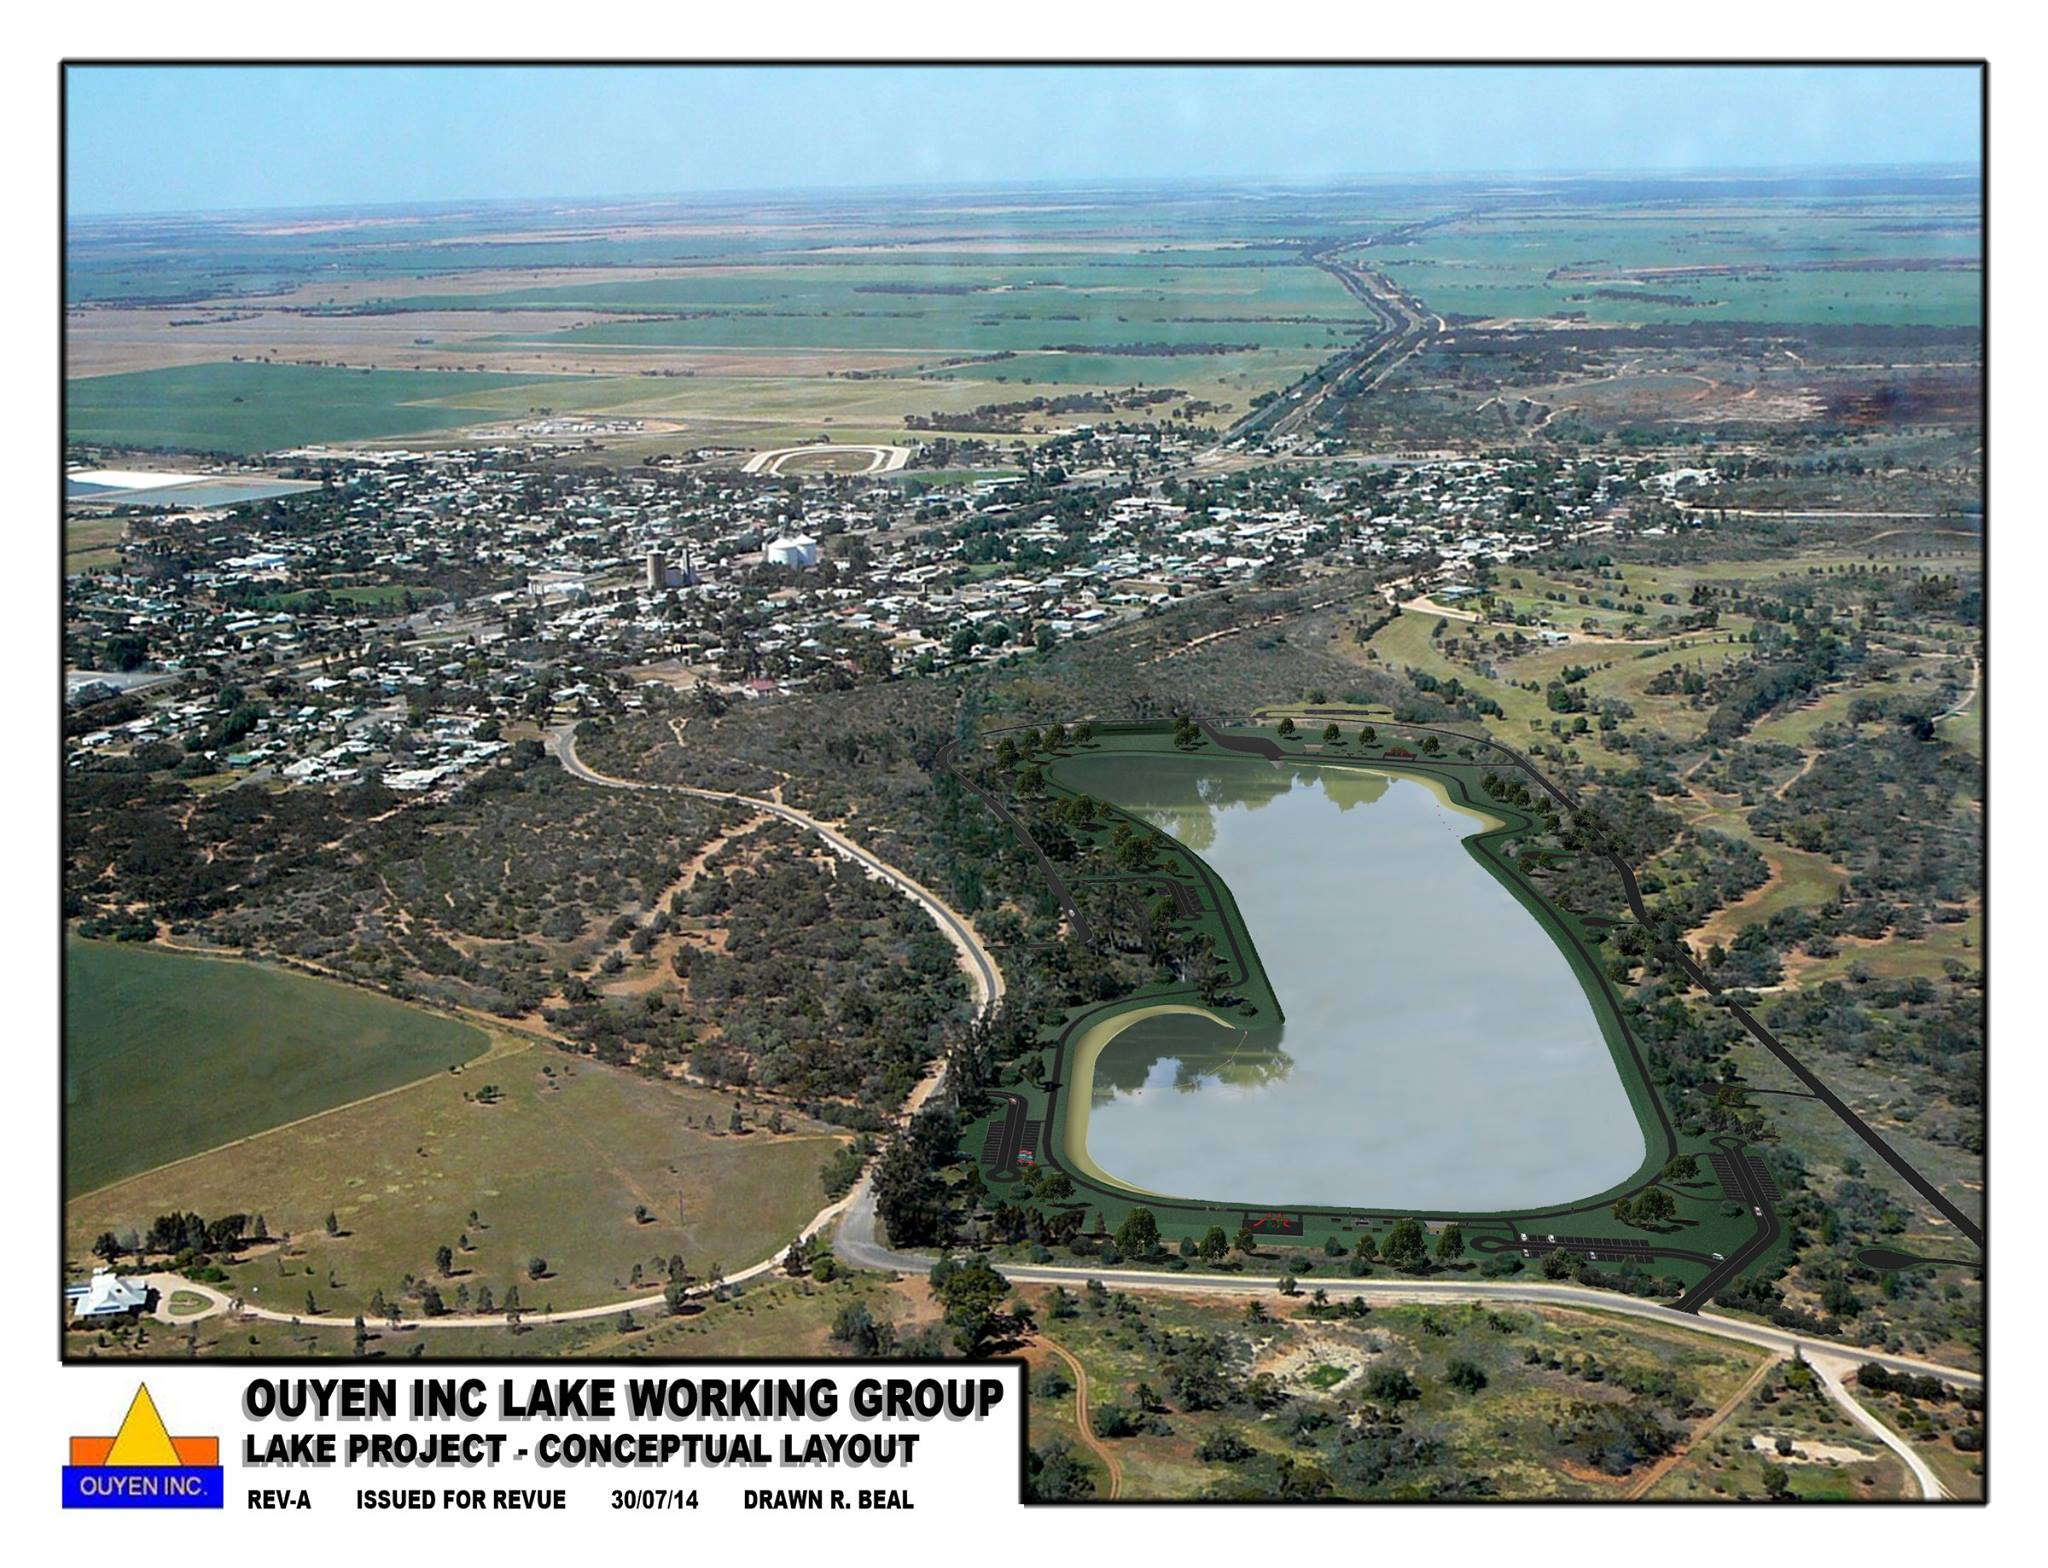 Conceptual layout of Ouyen Lake